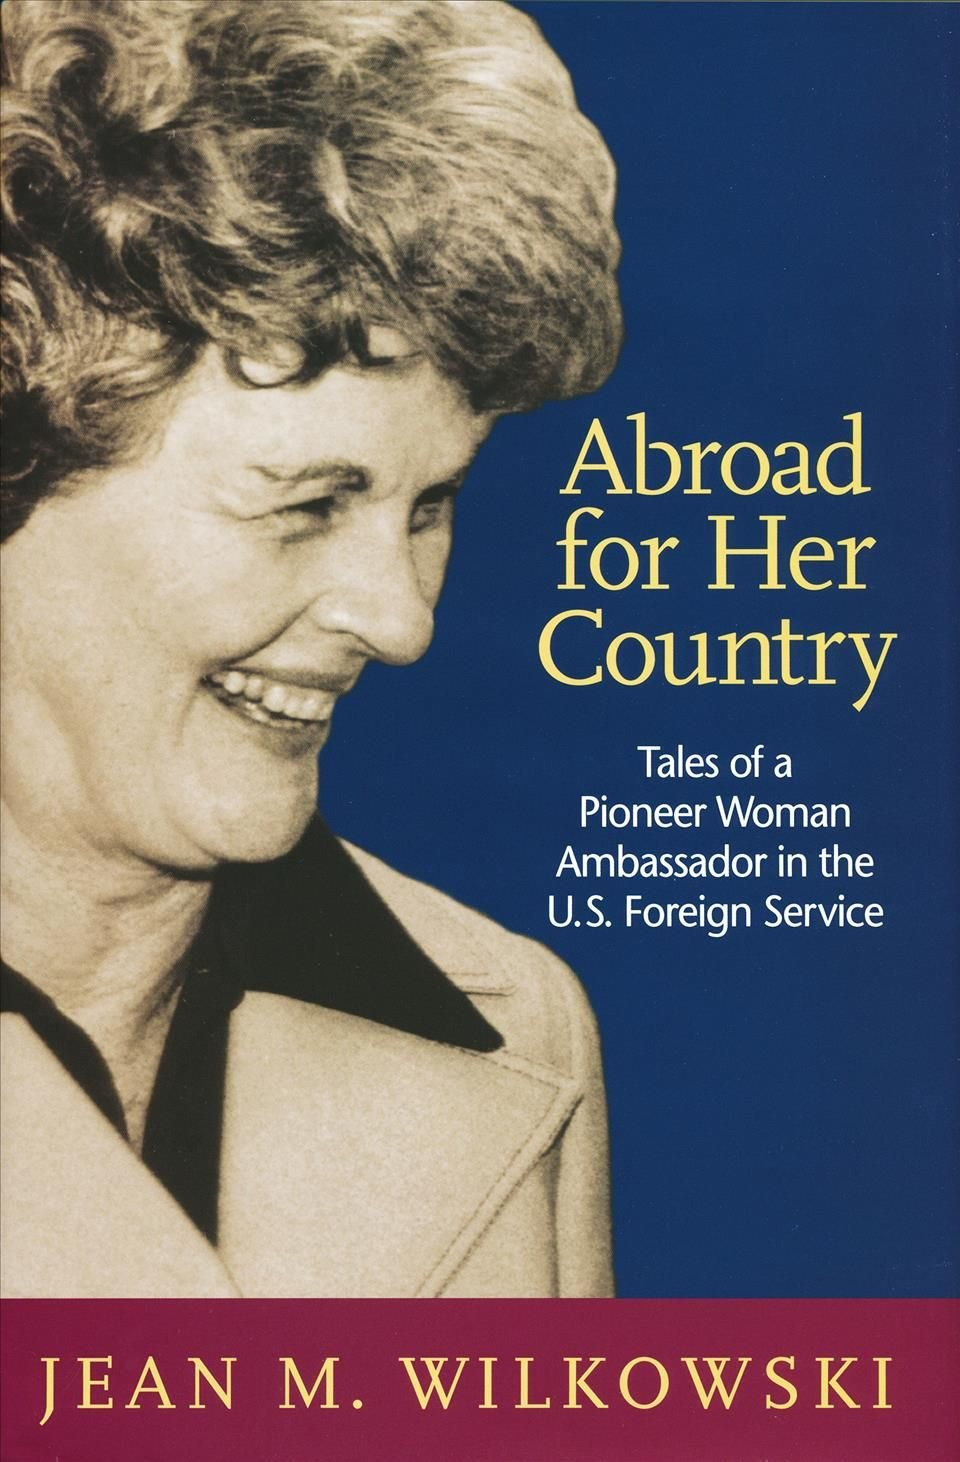 Abroad for Her Country